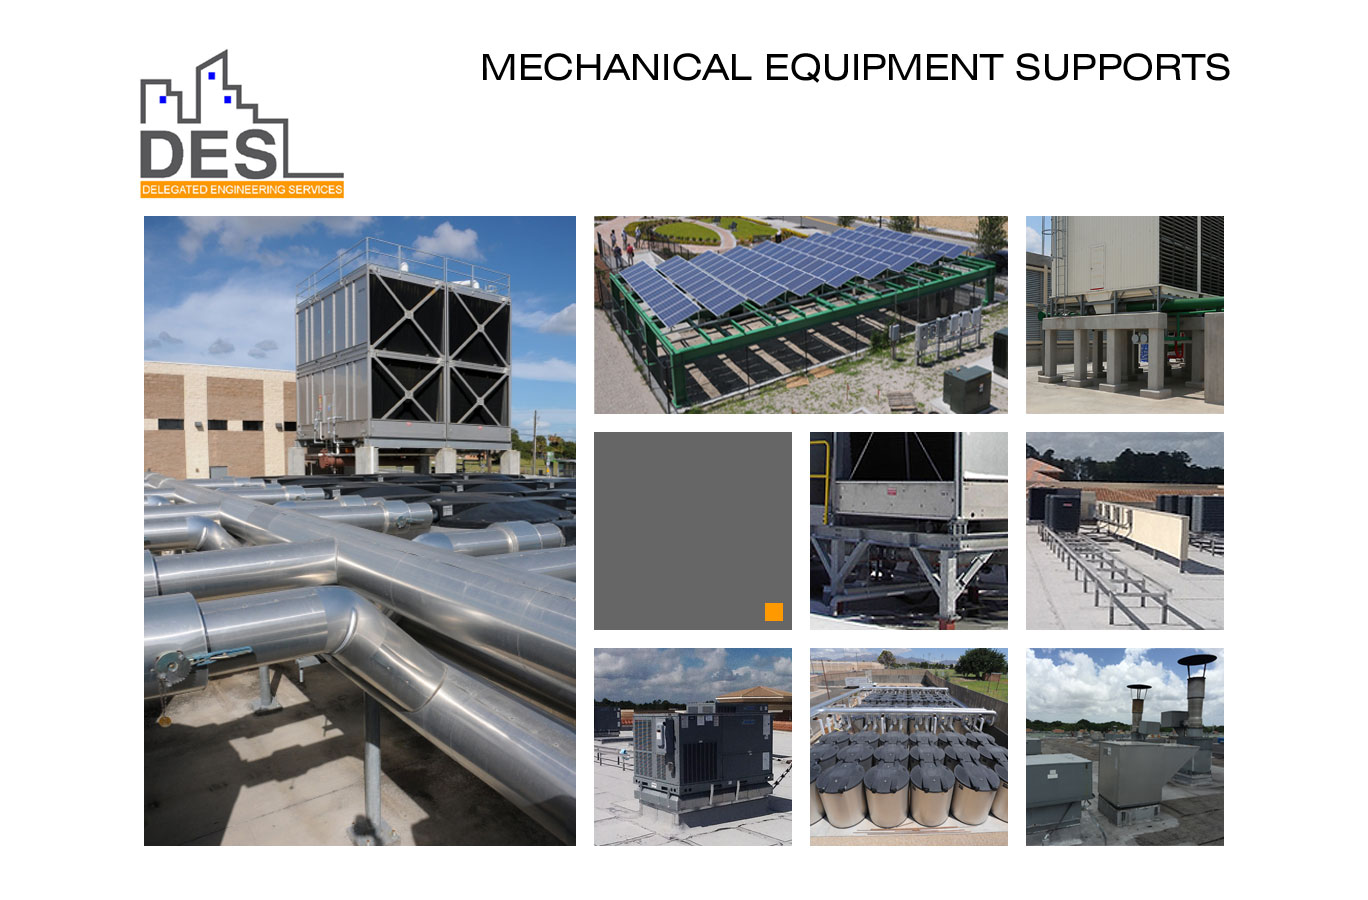 Loading DES Mechanical Equipment Supports...